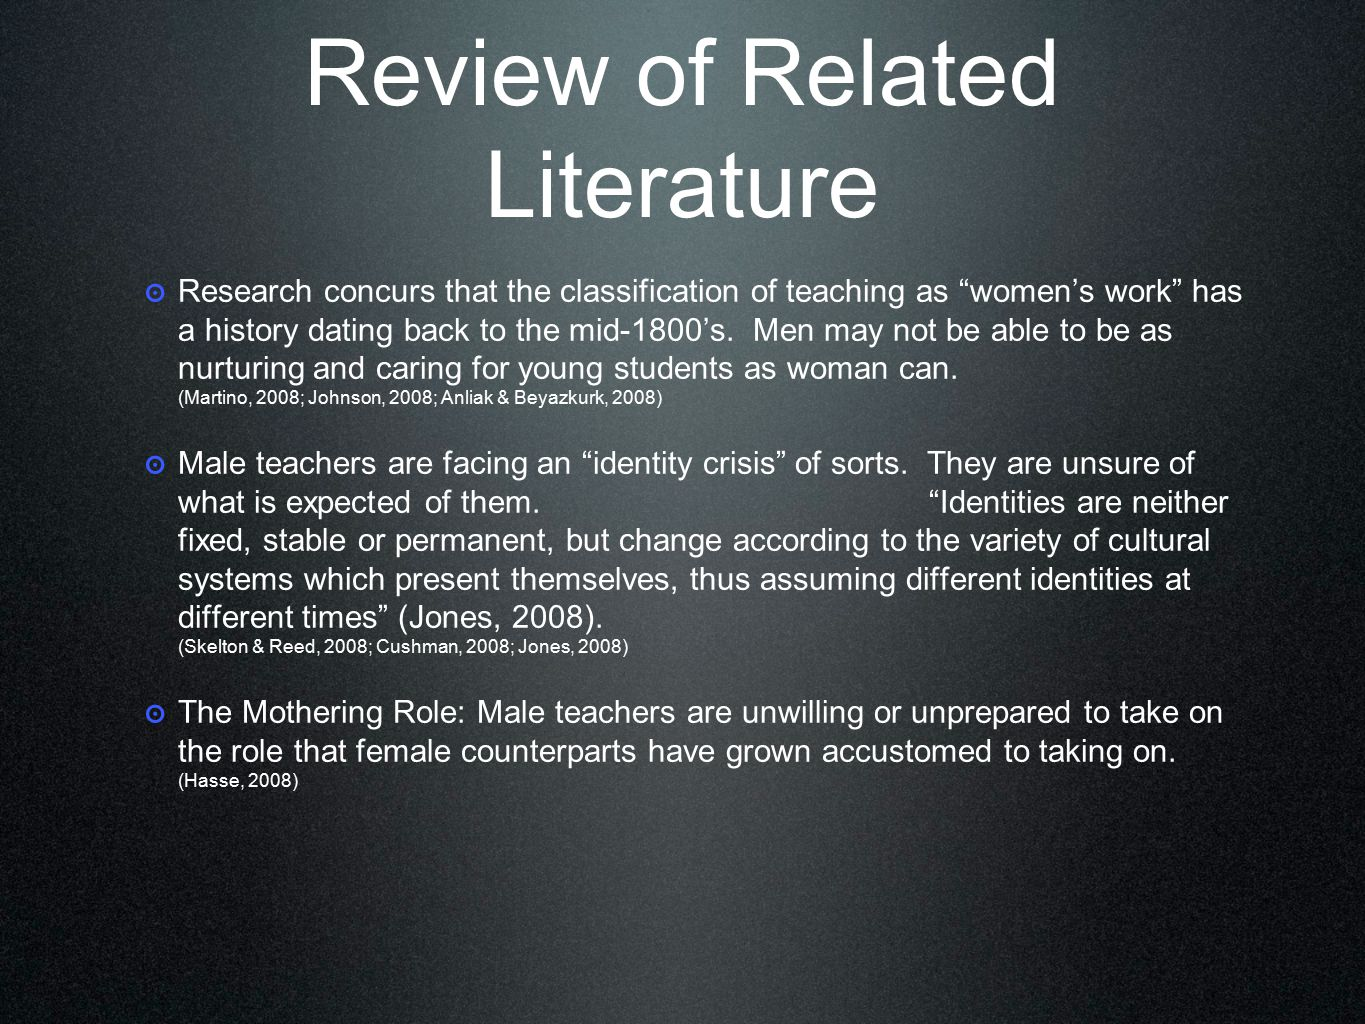 Review of Related Literature ๏ Research concurs that the classification of teaching as women's work has a history dating back to the mid-1800's.